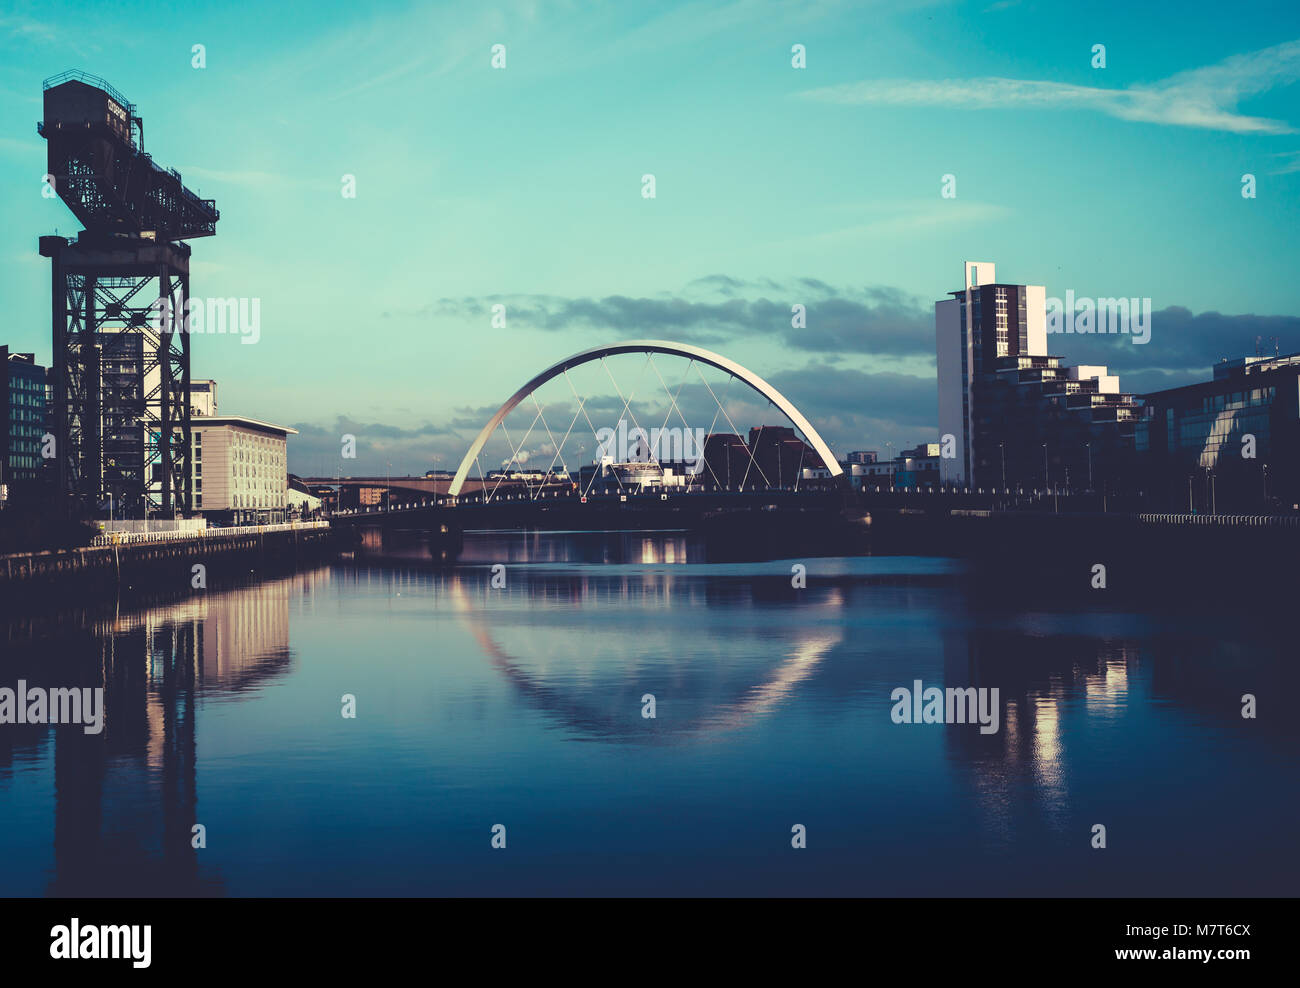 View of the Clyde Arc Bridge and Finnieston Crane, on the River Clyde, Glasgow, Scotland - Stock Image